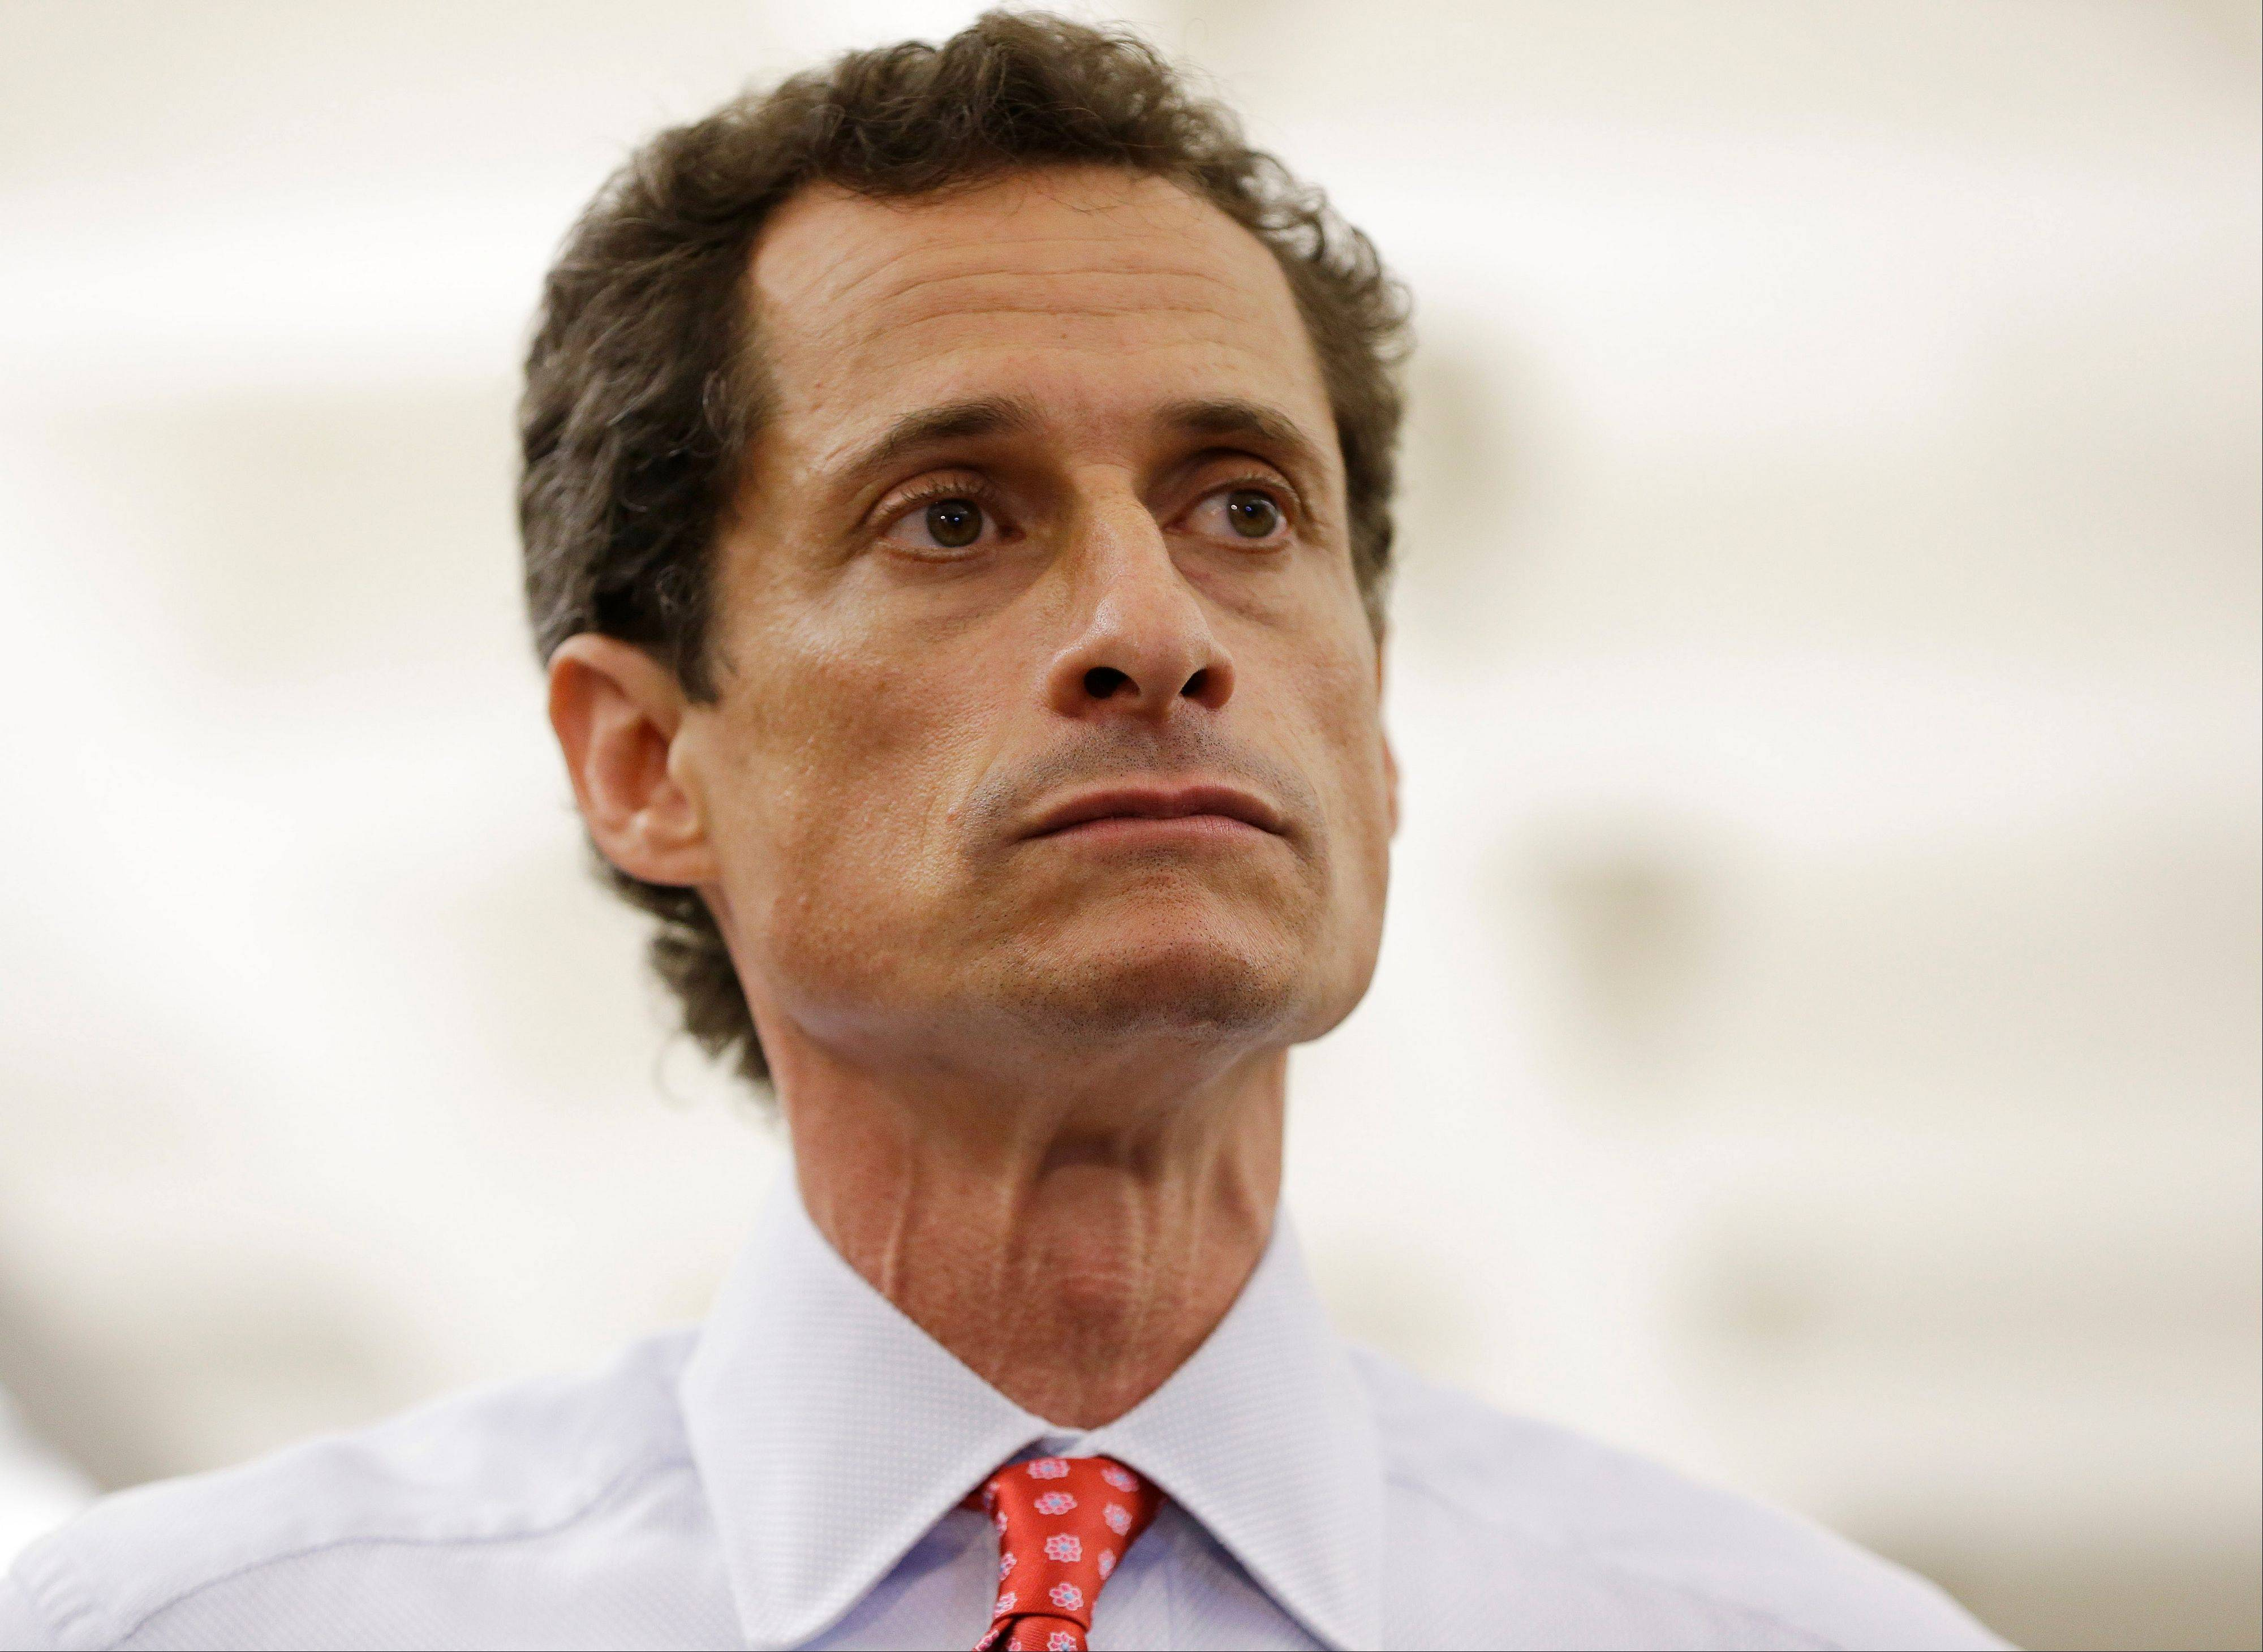 New York City Mayoral candidate Anthony Weiner takes reporters questions Tuesday during a news conference at the Gay Men�s Health Crisis headquarters in New York. The former congressman says he�s not dropping out of the New York City mayoral race in light of newly revealed explicit online correspondence with a young woman.